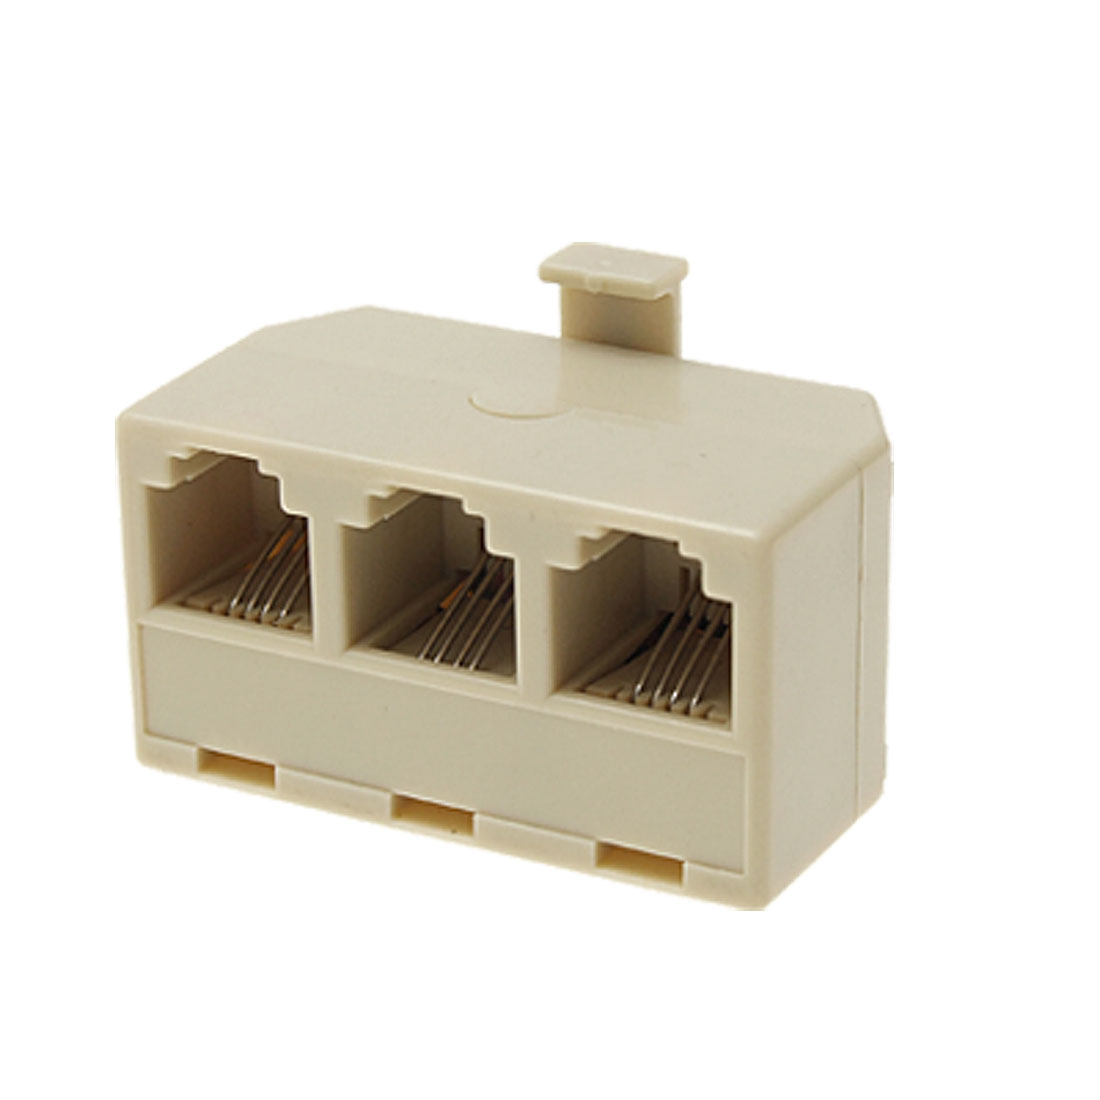 RJ11-Male-to-3-RJ11-Female-Socket-Adapter-Converter-Dvdzg